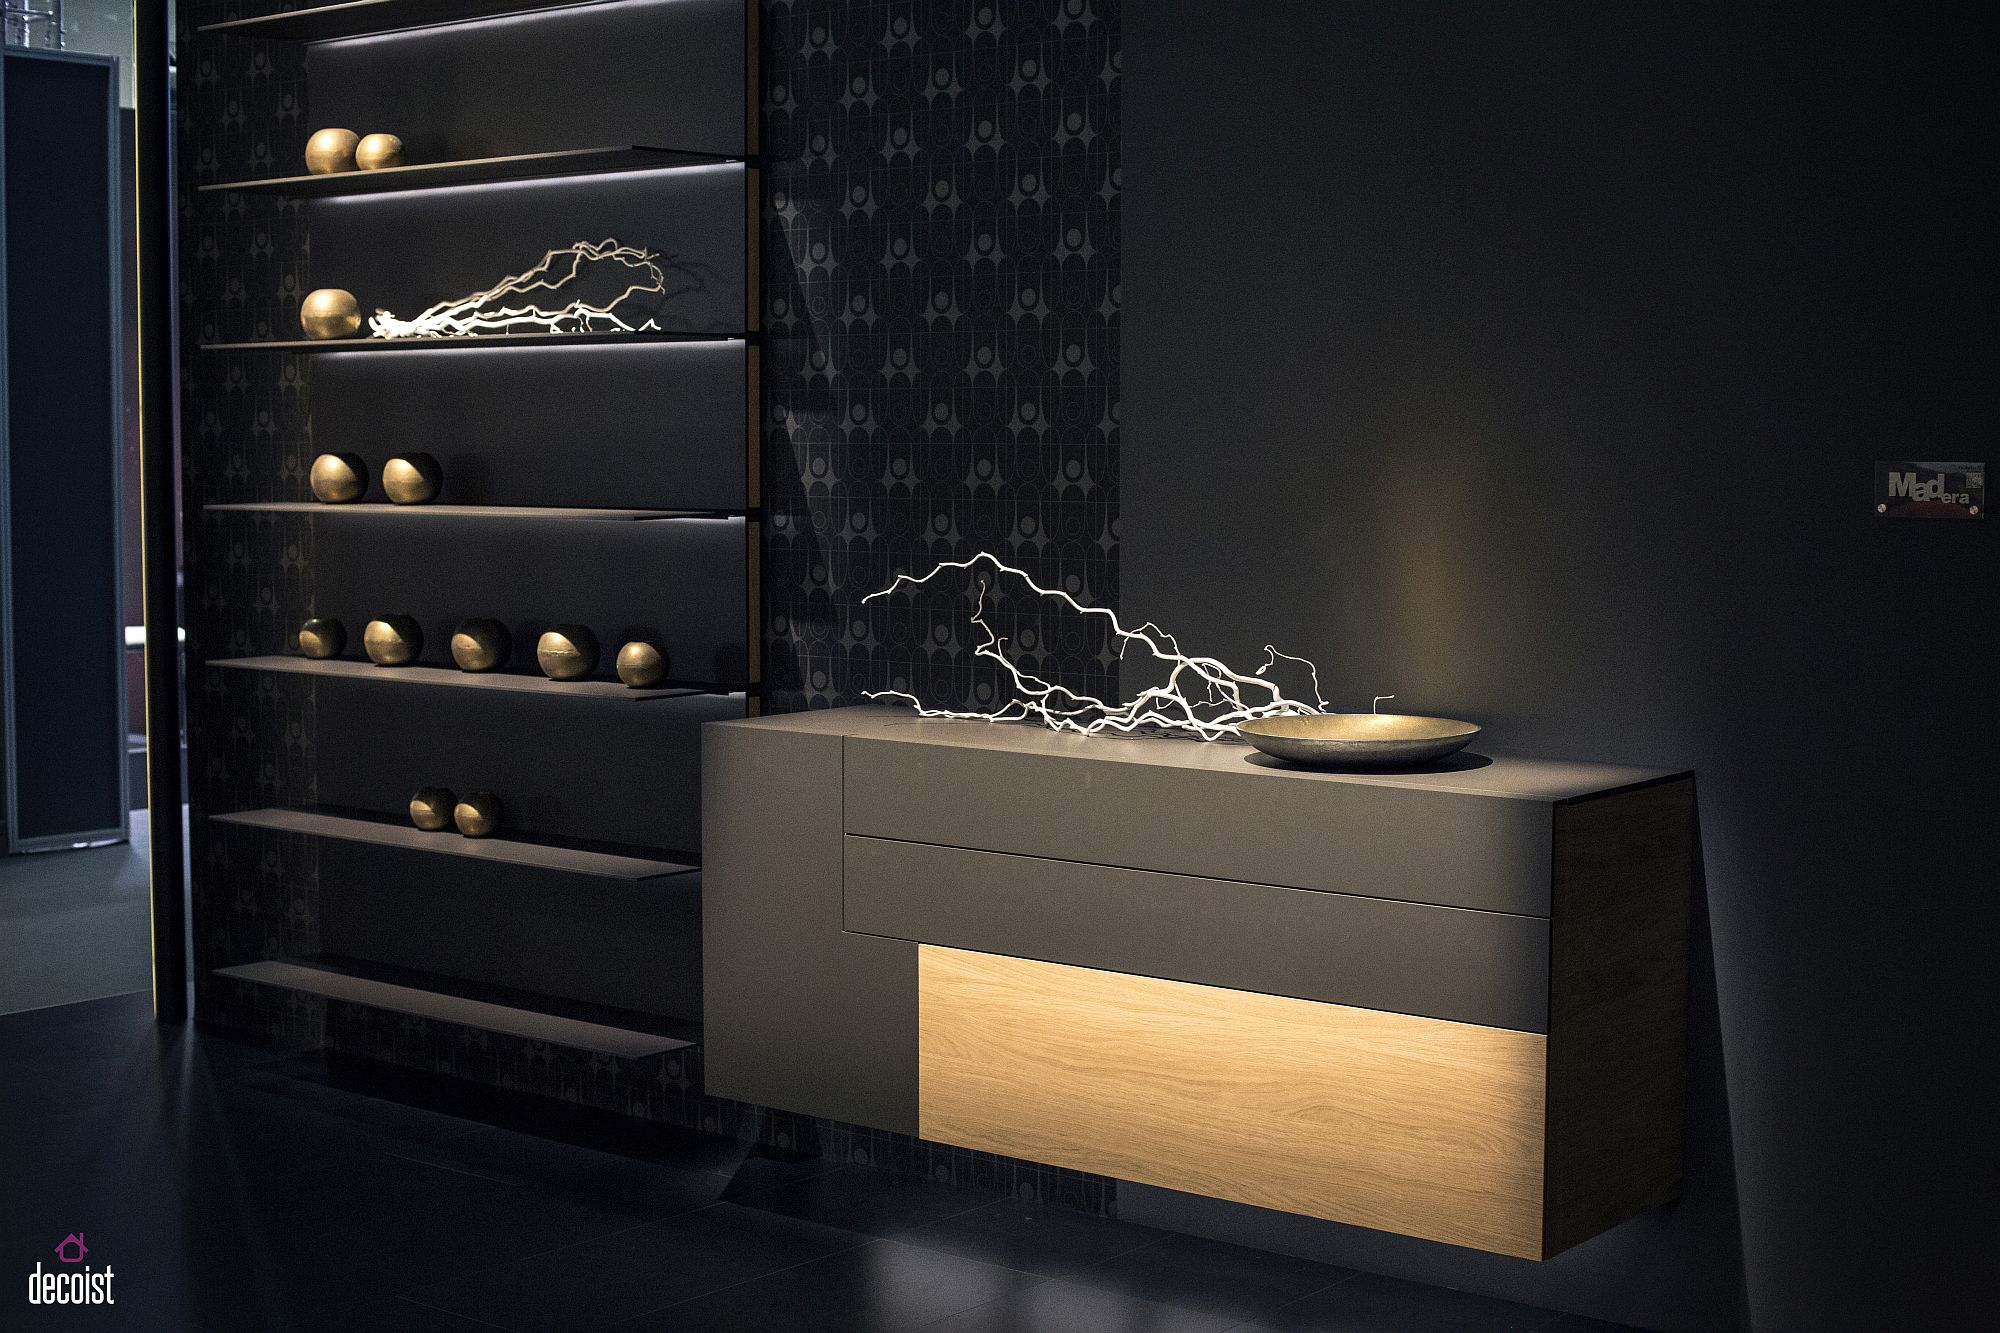 A more classic take on wall shelving with modern flair